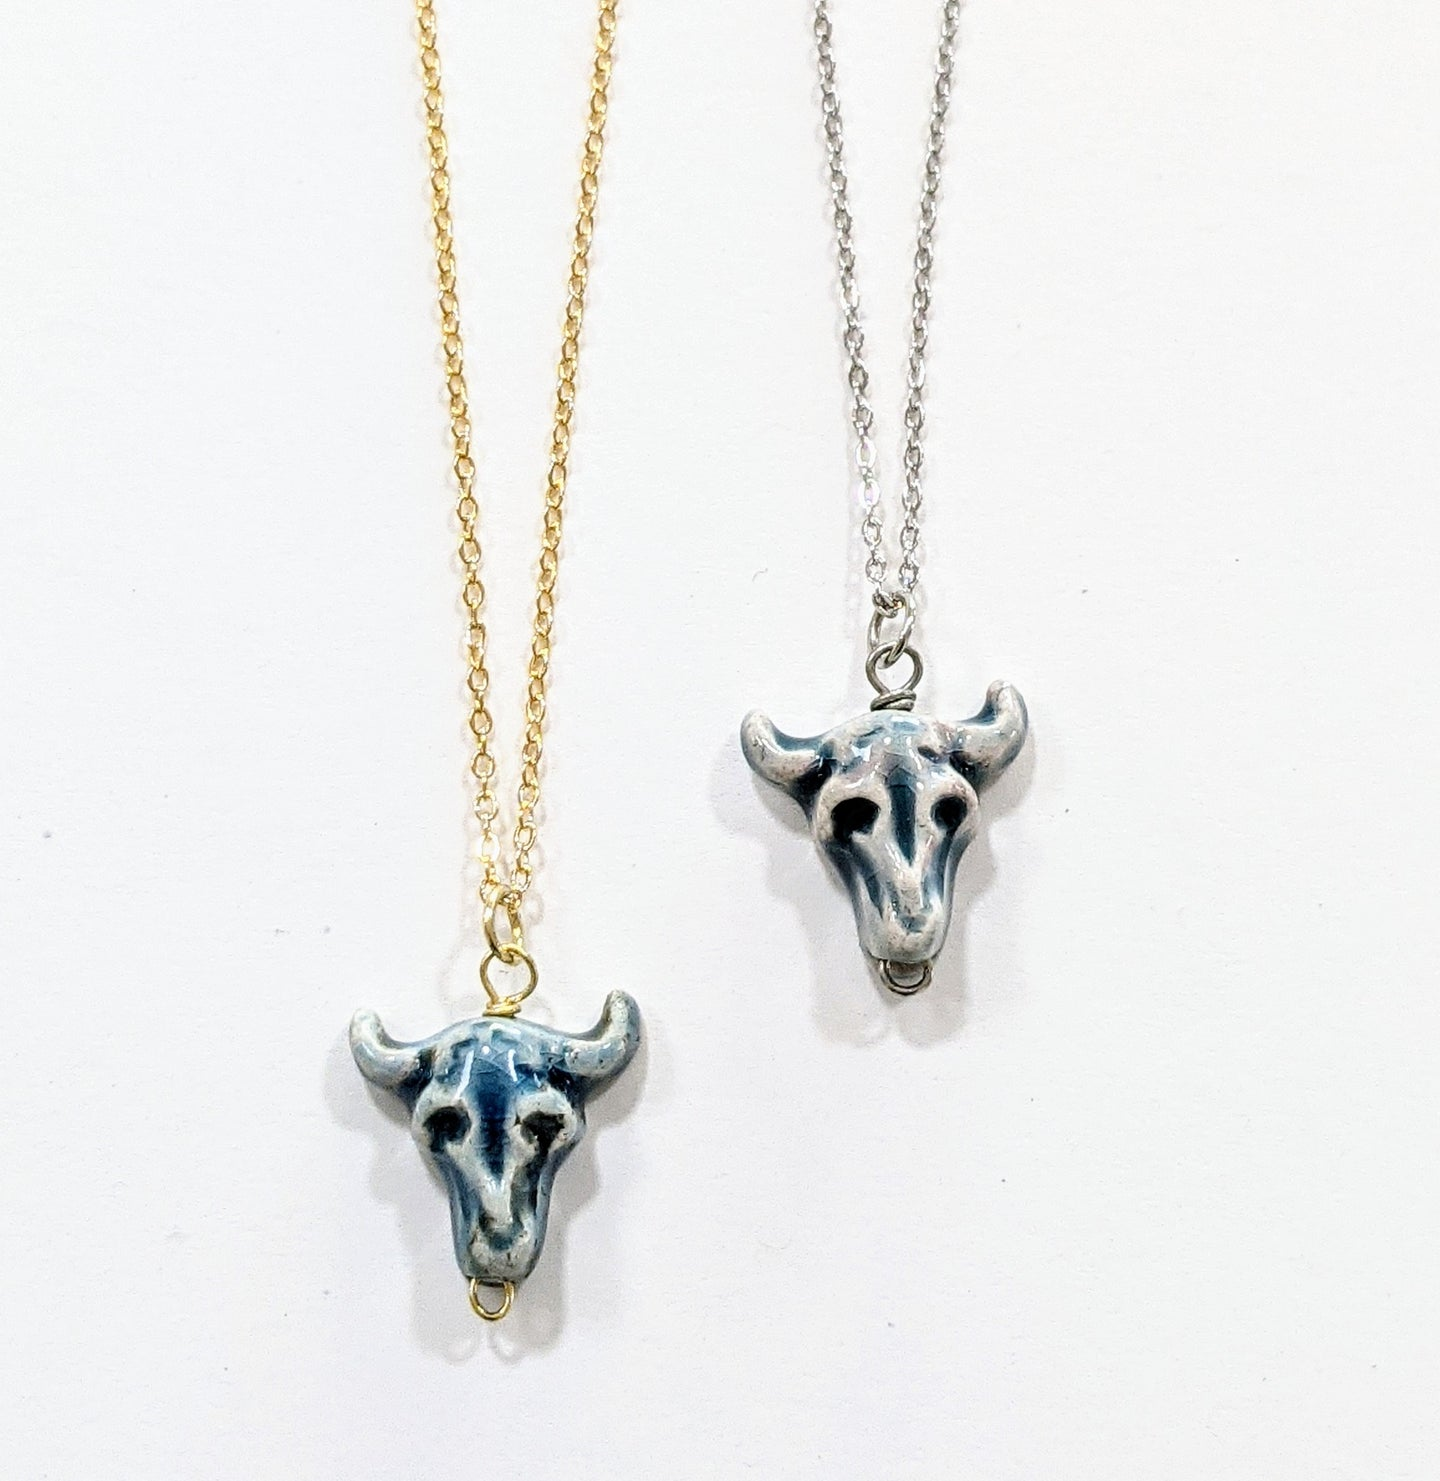 Blue steer skull charm handmade necklace